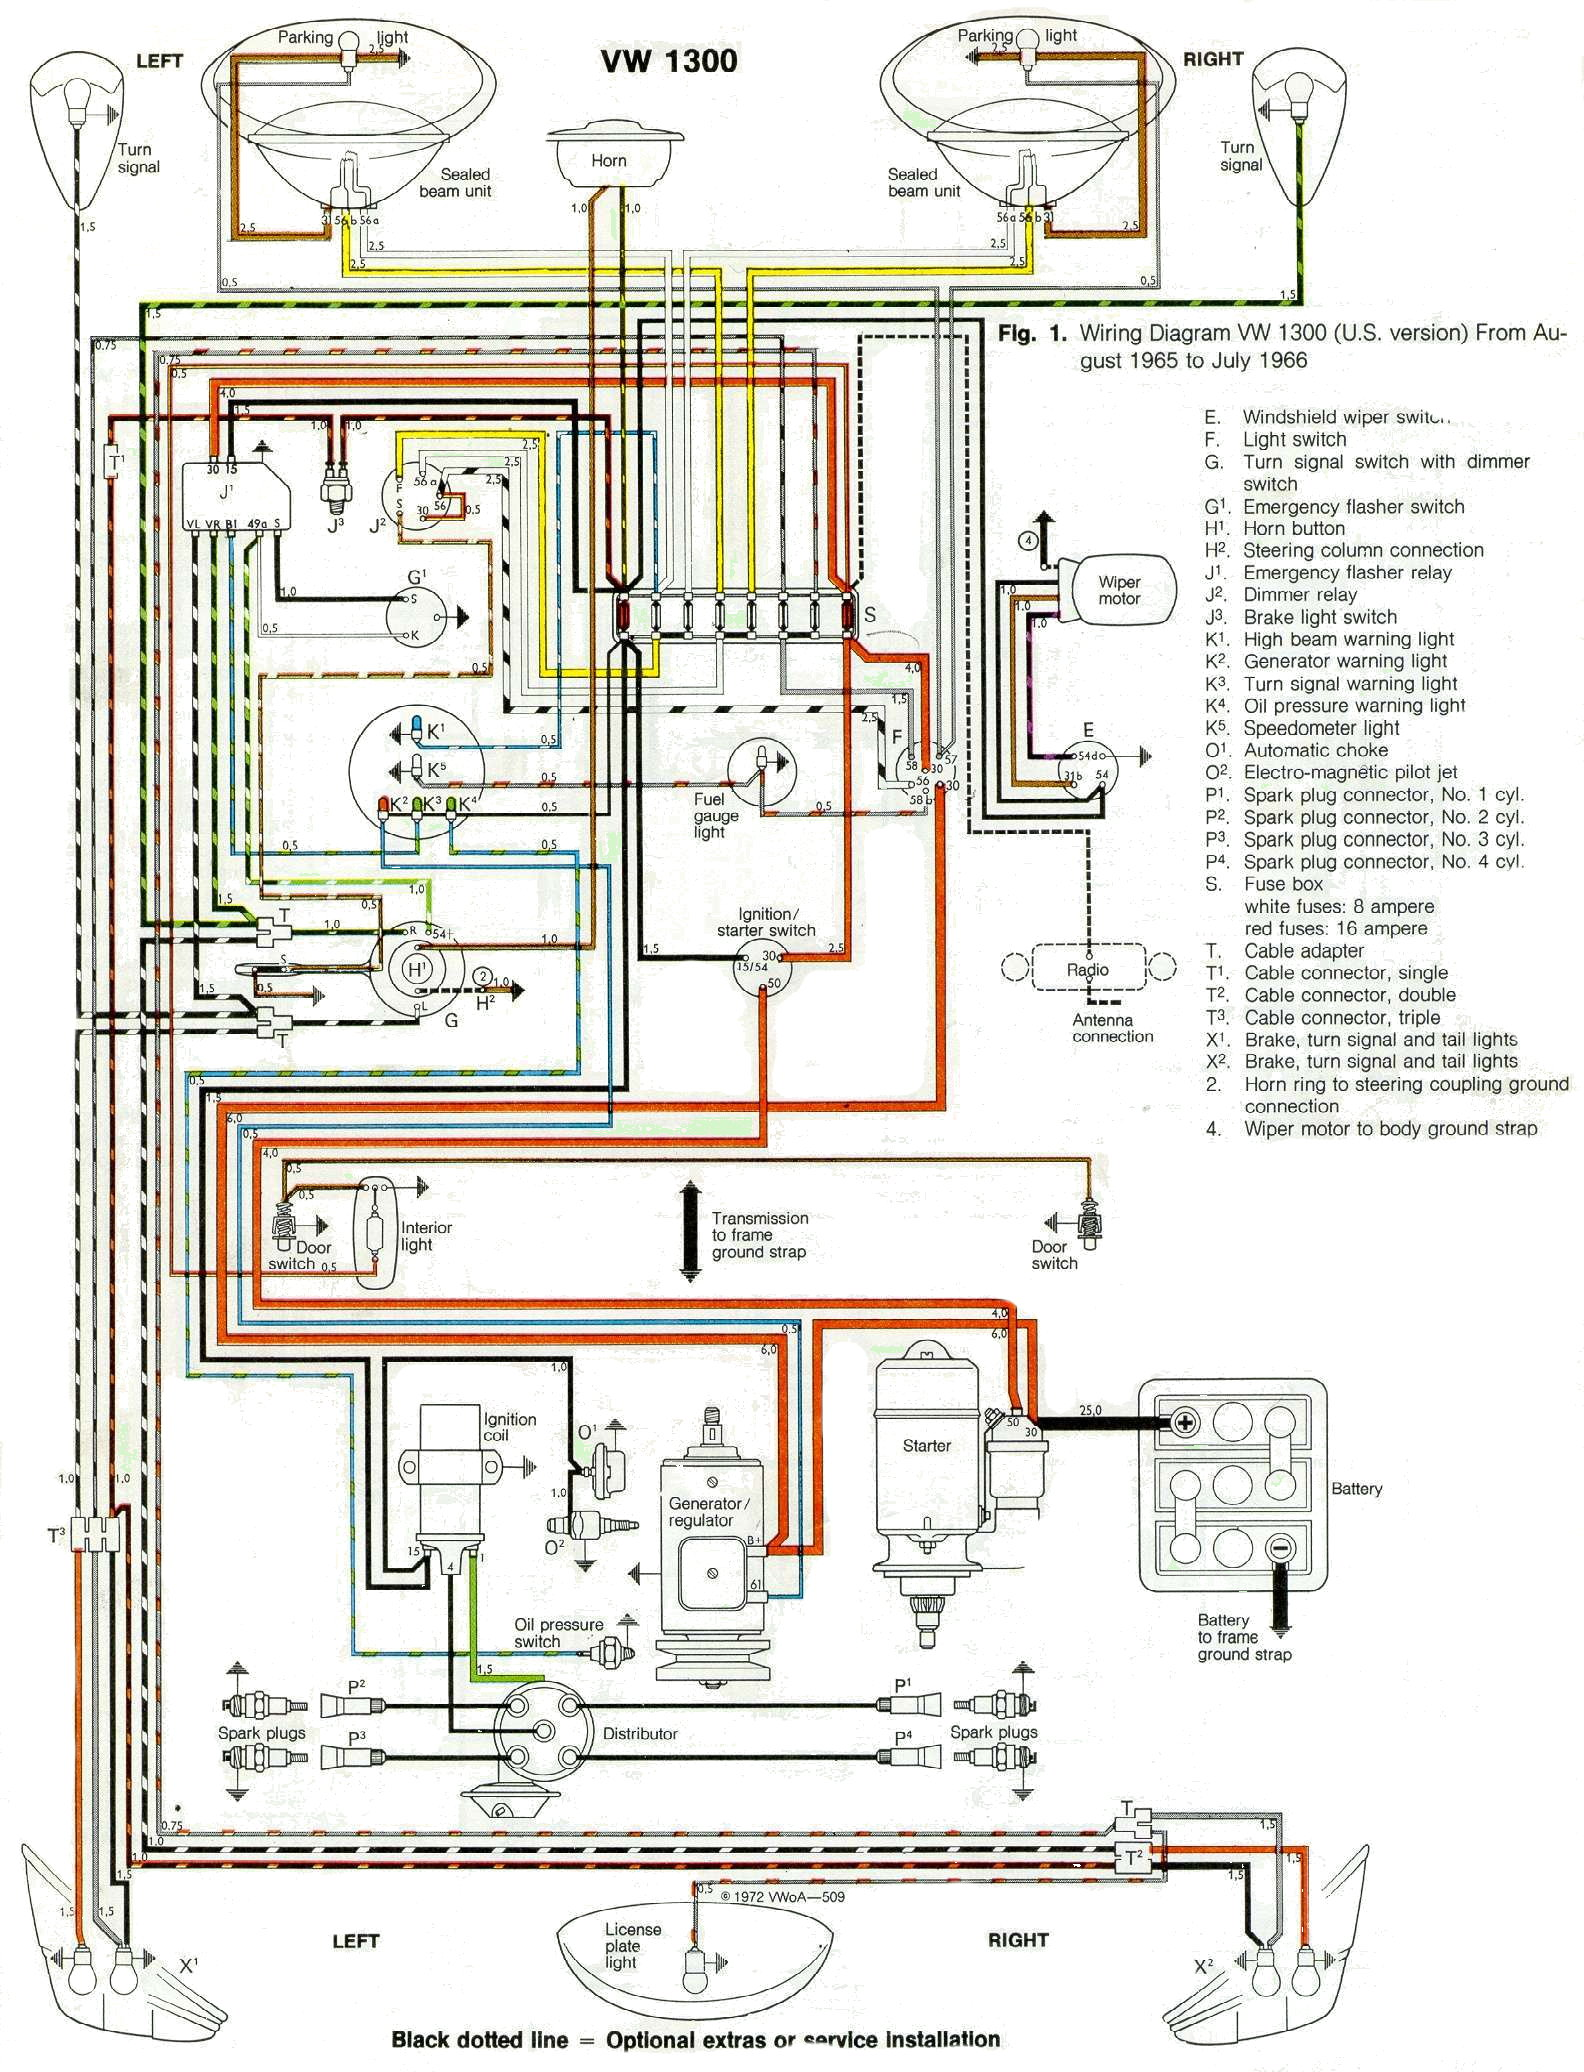 1966 Wiring Diagram